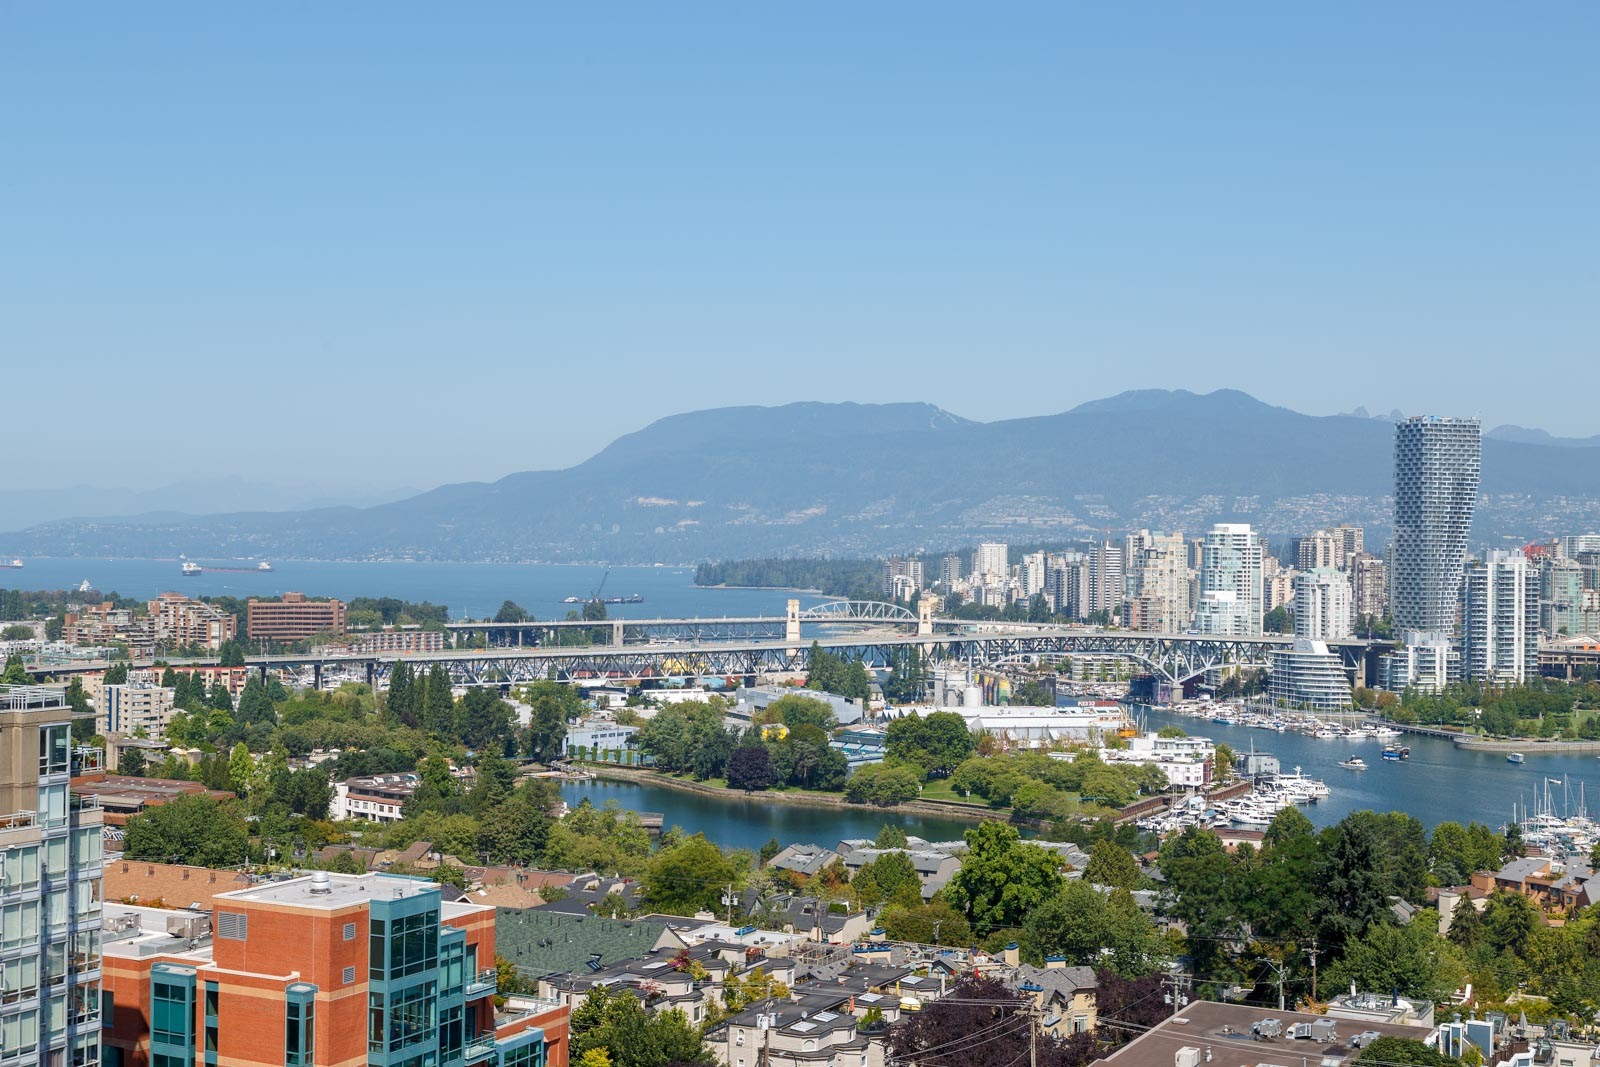 View of Vancouver city skyline from rental property managed penthouse.